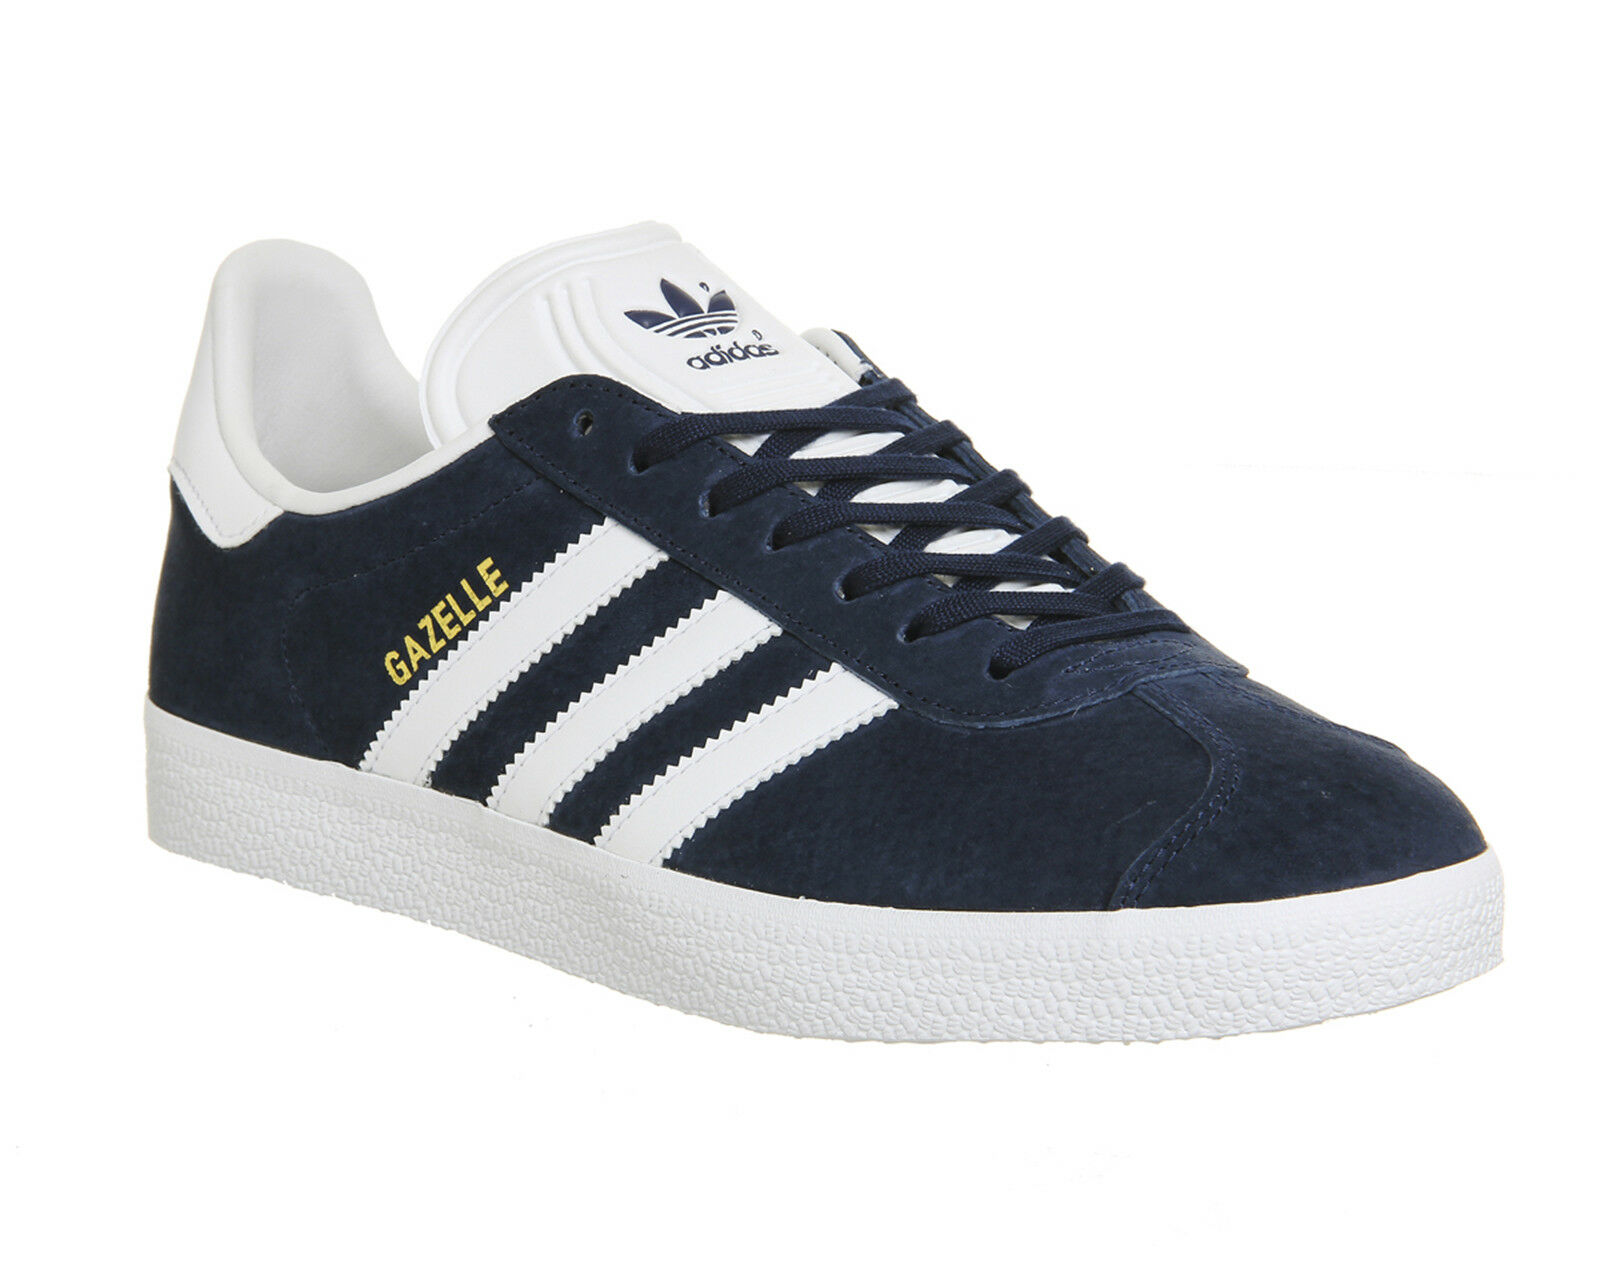 Adidas Lux Hommes Navy Trainers bleu Hockey Court Sports Chaussures Trainers Navy Astroturf 3b303c